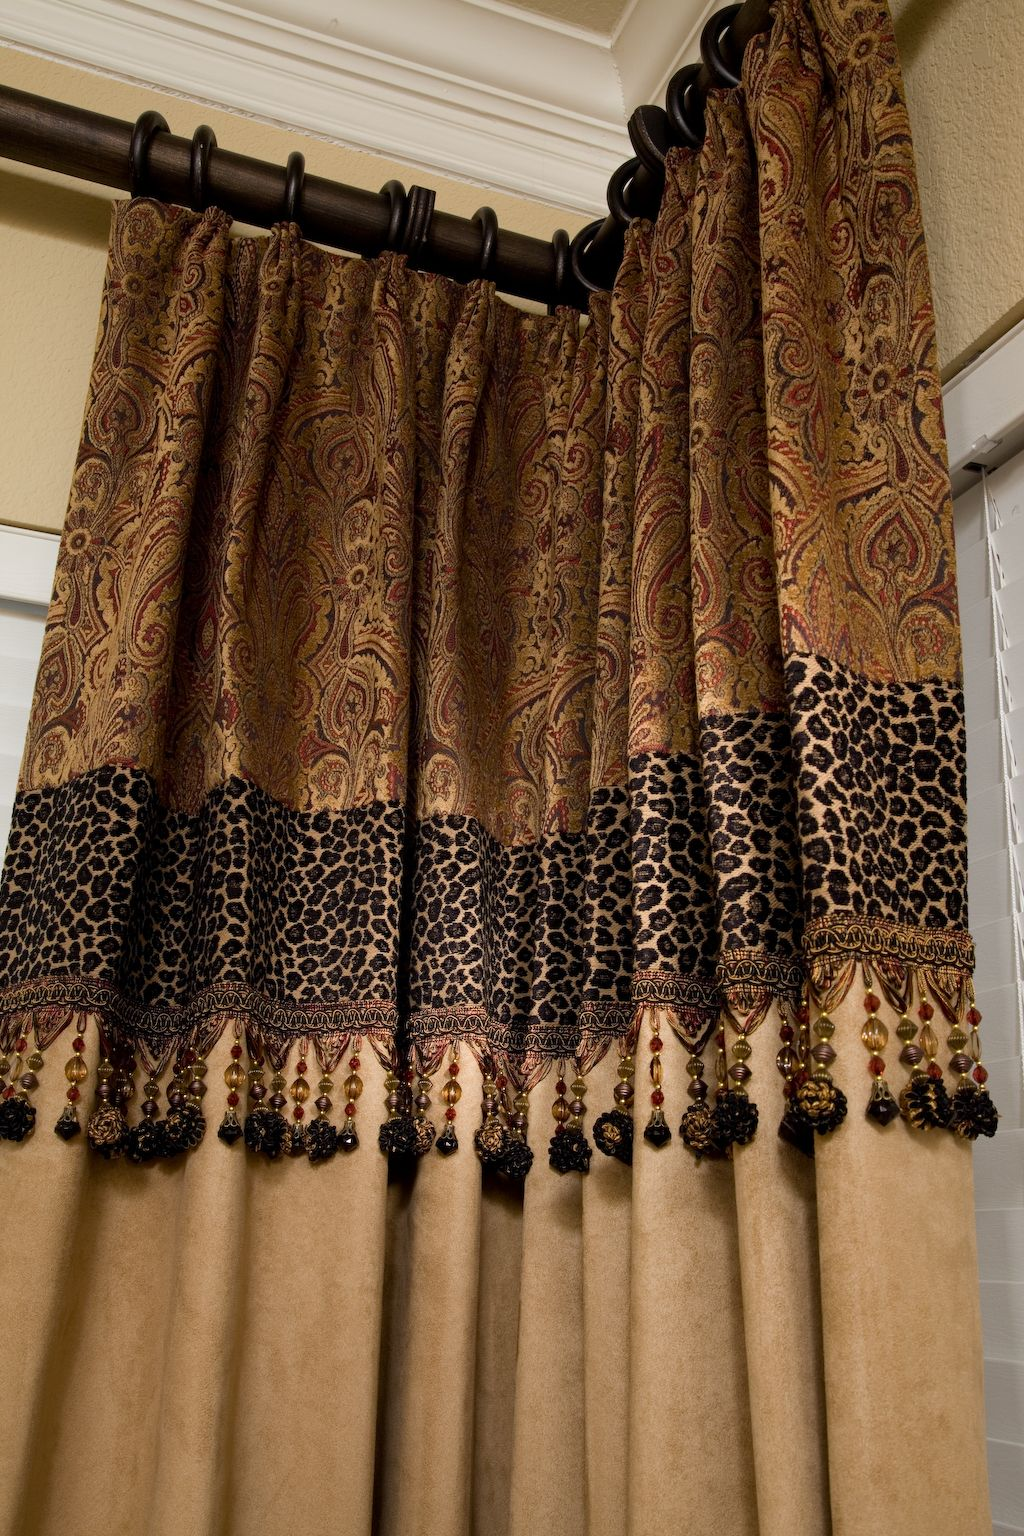 Custom drapery - Inspiration - Old World/Tuscan Style | Pinterest ...